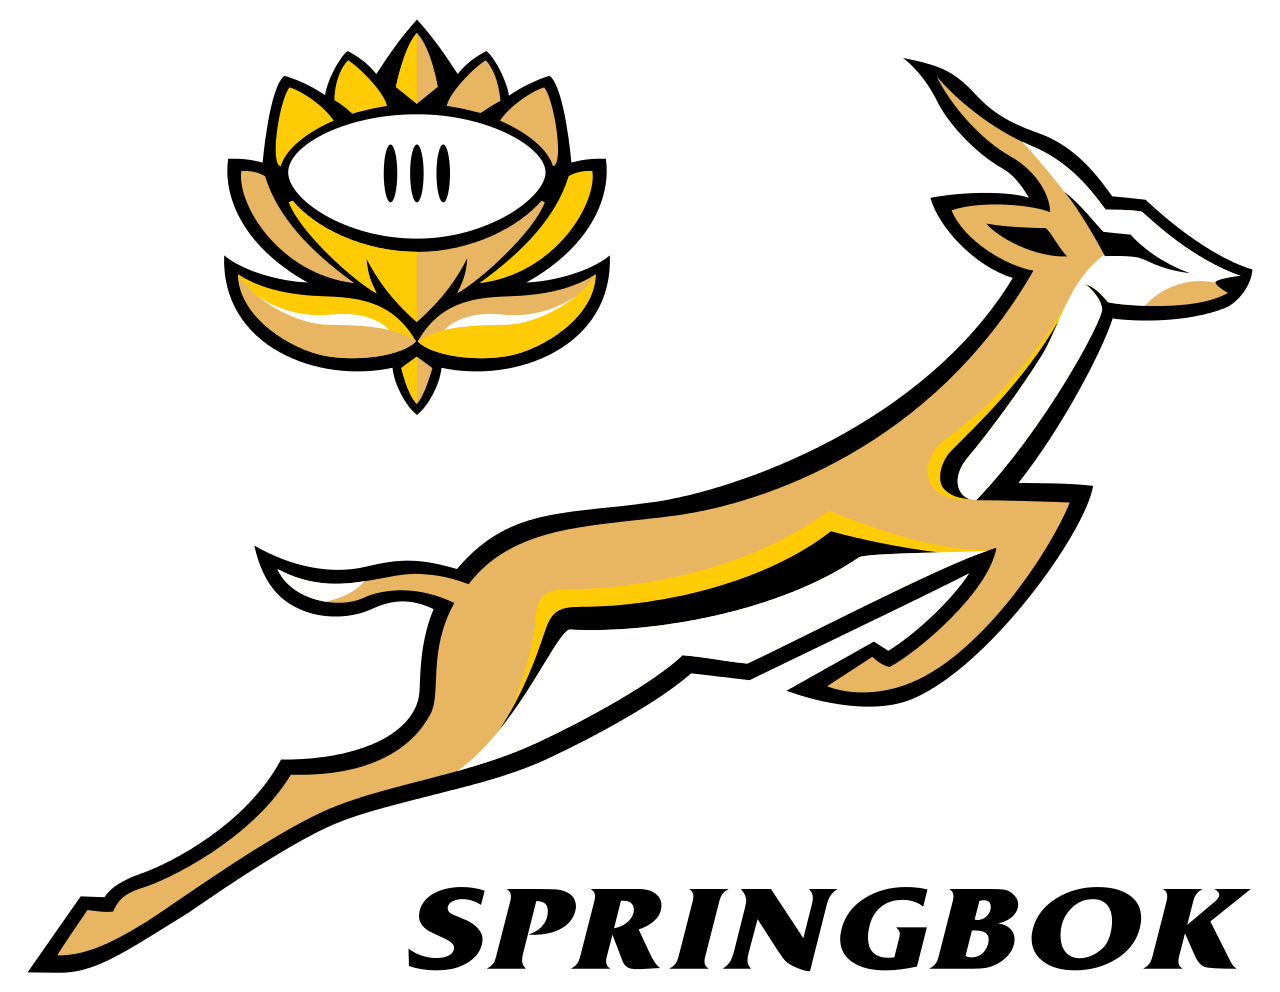 The South African National Animal Is The Springbok This Symbol Is Also Widely Known For The South African Nation Springbok Rugby South Africa Rugby Rugby Logo